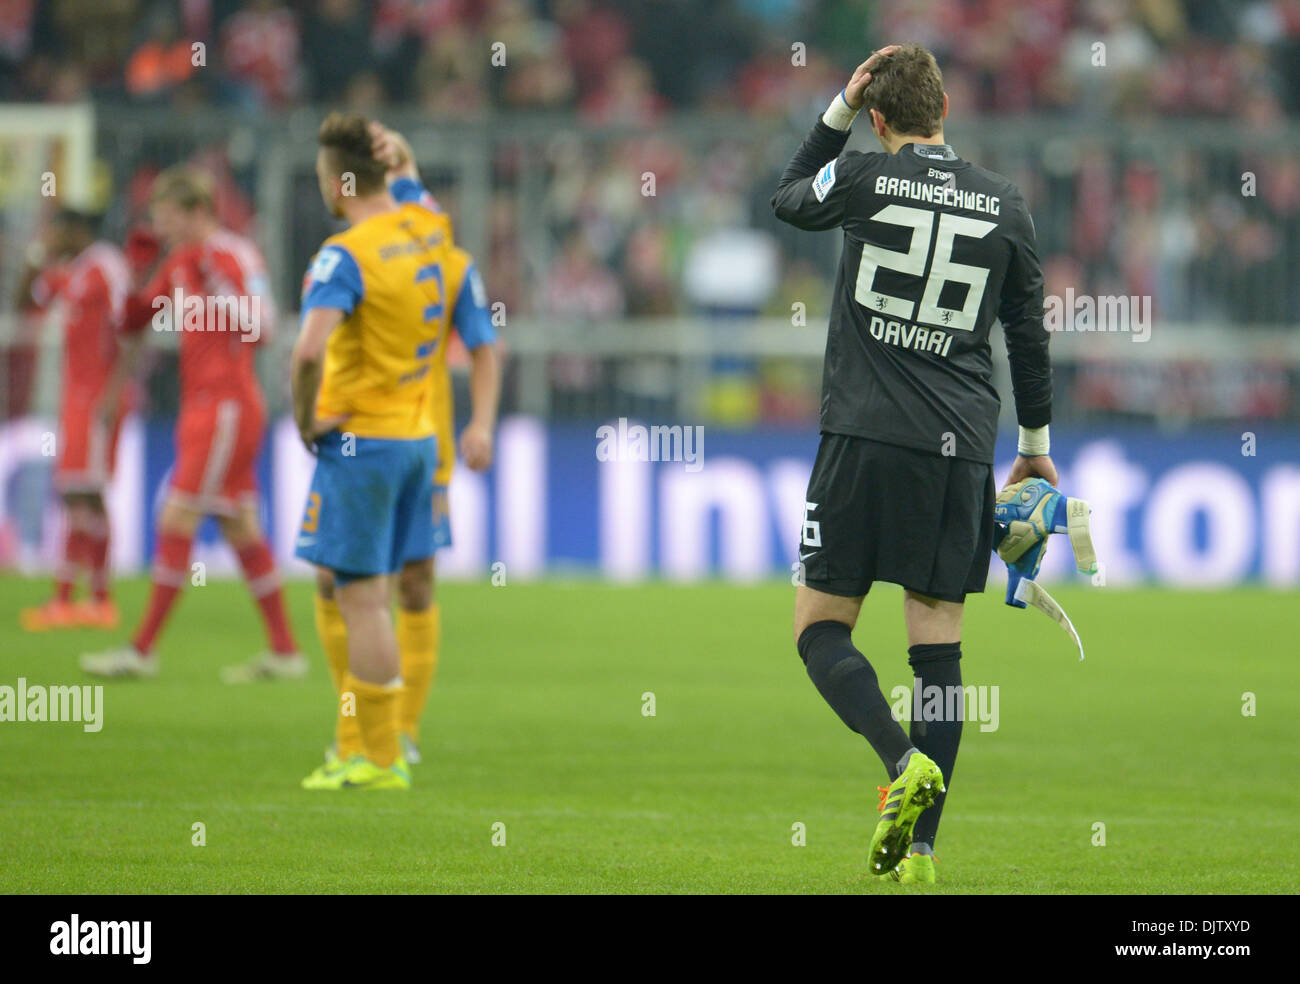 Munich, Germany. 30th Nov, 2013. Braunschweig's goalkeeper Daniel Davari walks across the pitch after the German Bundesliga match between FC Bayern Munich and Eintracht Braunschweig at Allianz Arena in Munich, Germany, 30 November 2013. Photo: ANDREAS GEBERT (ATTENTION: Due to the accreditation guidelines, the DFL only permits the publication and utilisation of up to 15 pictures per match on the internet and in online media during the match.)/dpa/Alamy Live News - Stock Image